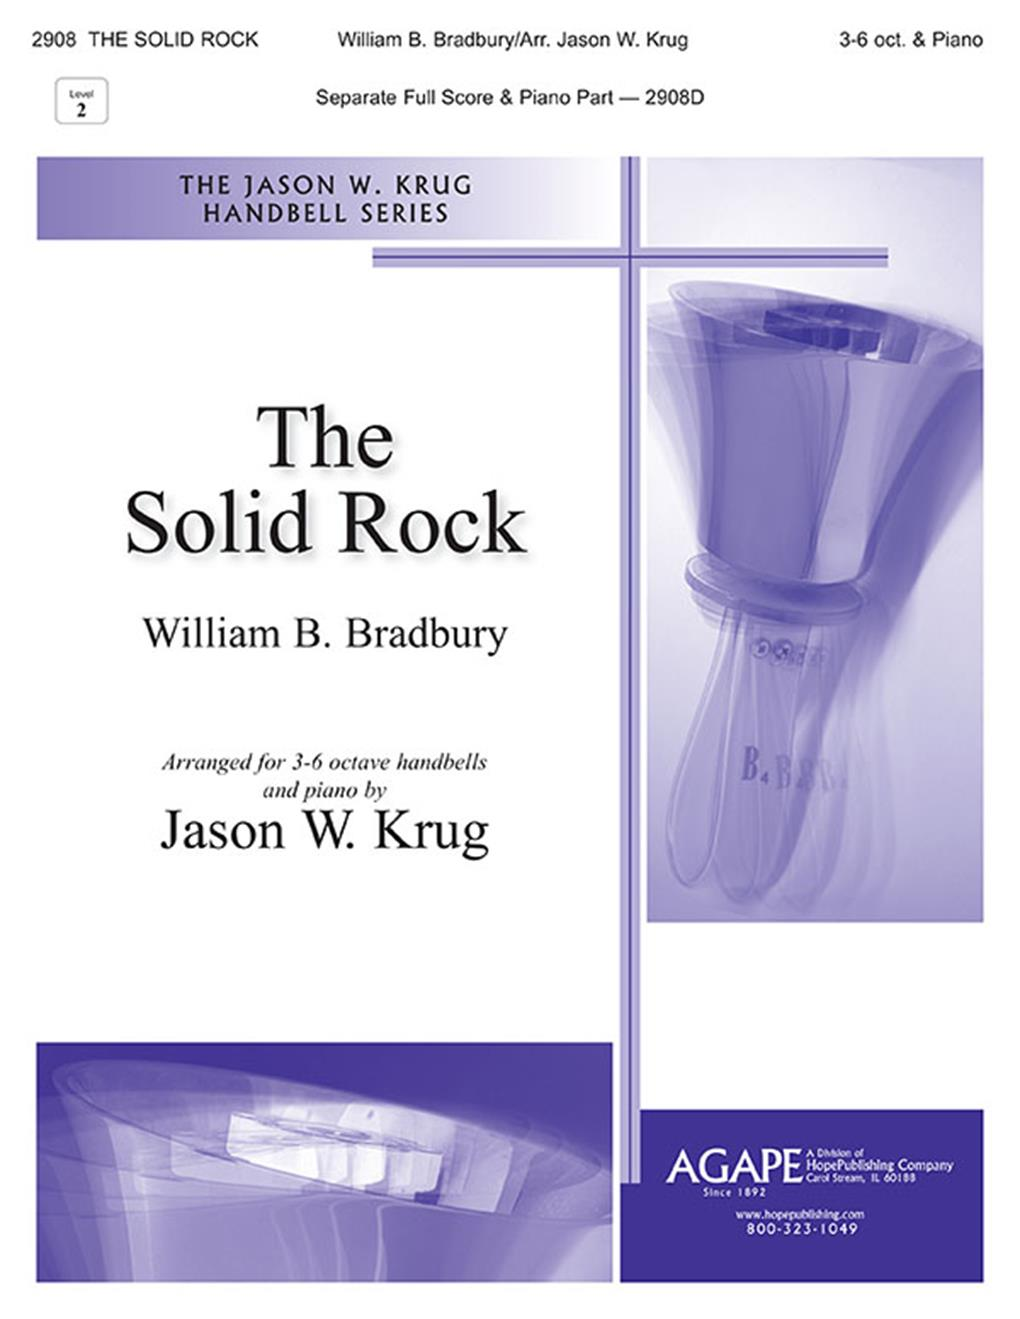 The Solid Rock - 3-6 Oct. Cover Image